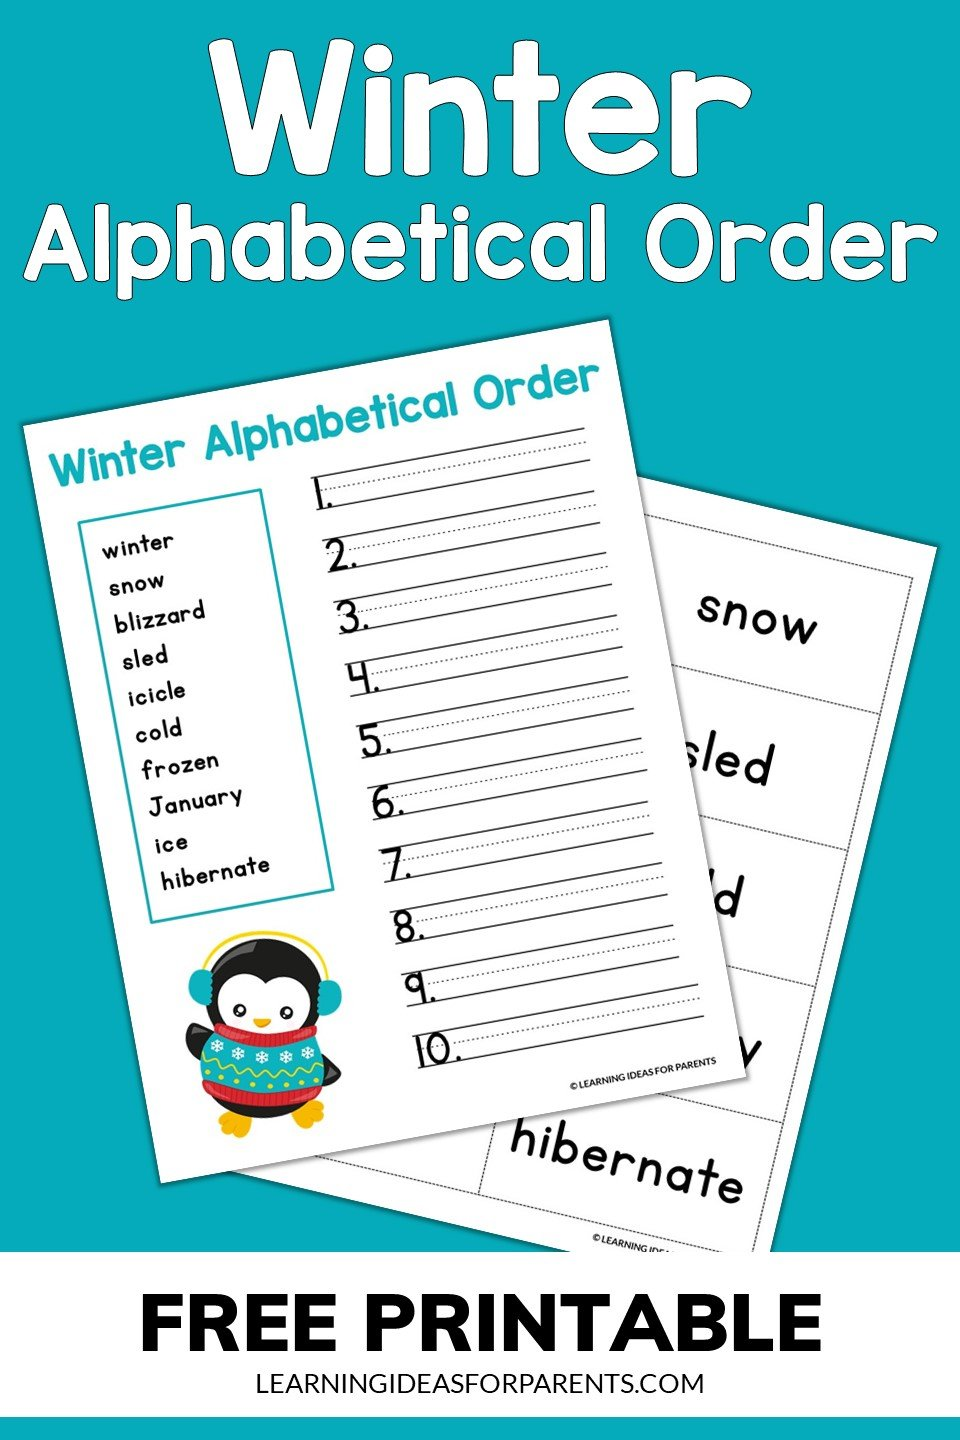 Winter alphabetical order free printable for kids